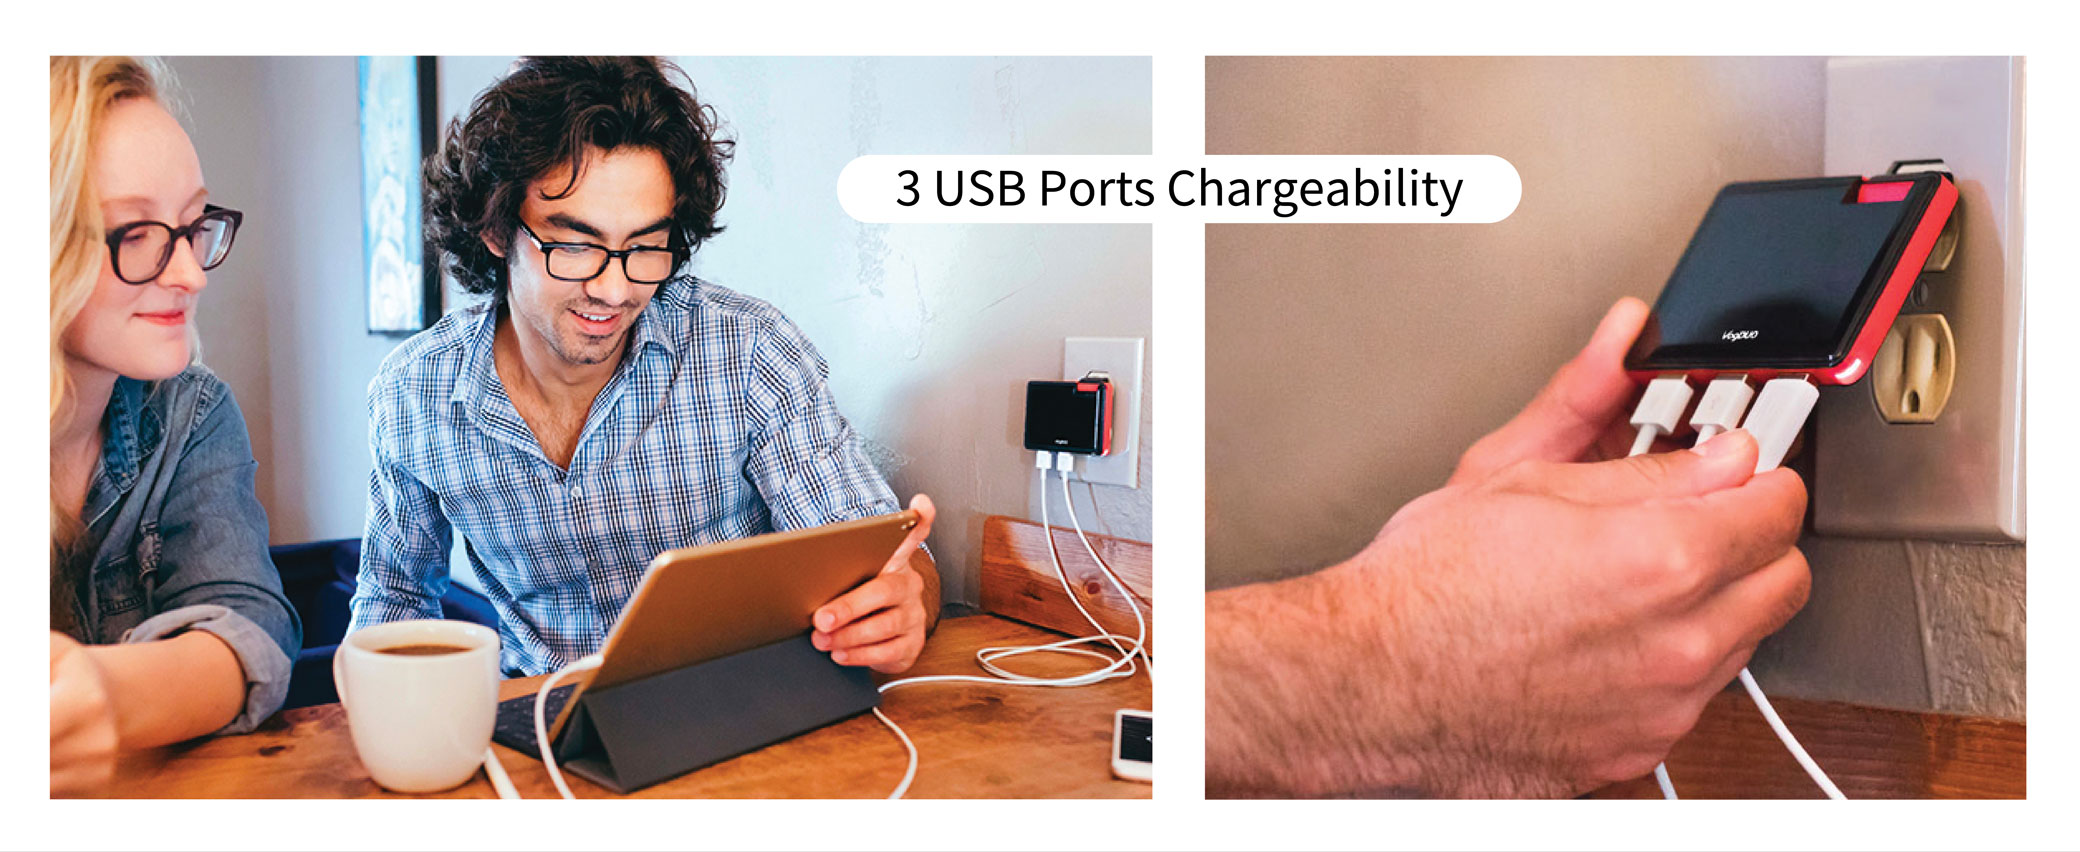 VogDUO Black 3 Ports USB Quick Charge Wall Charger